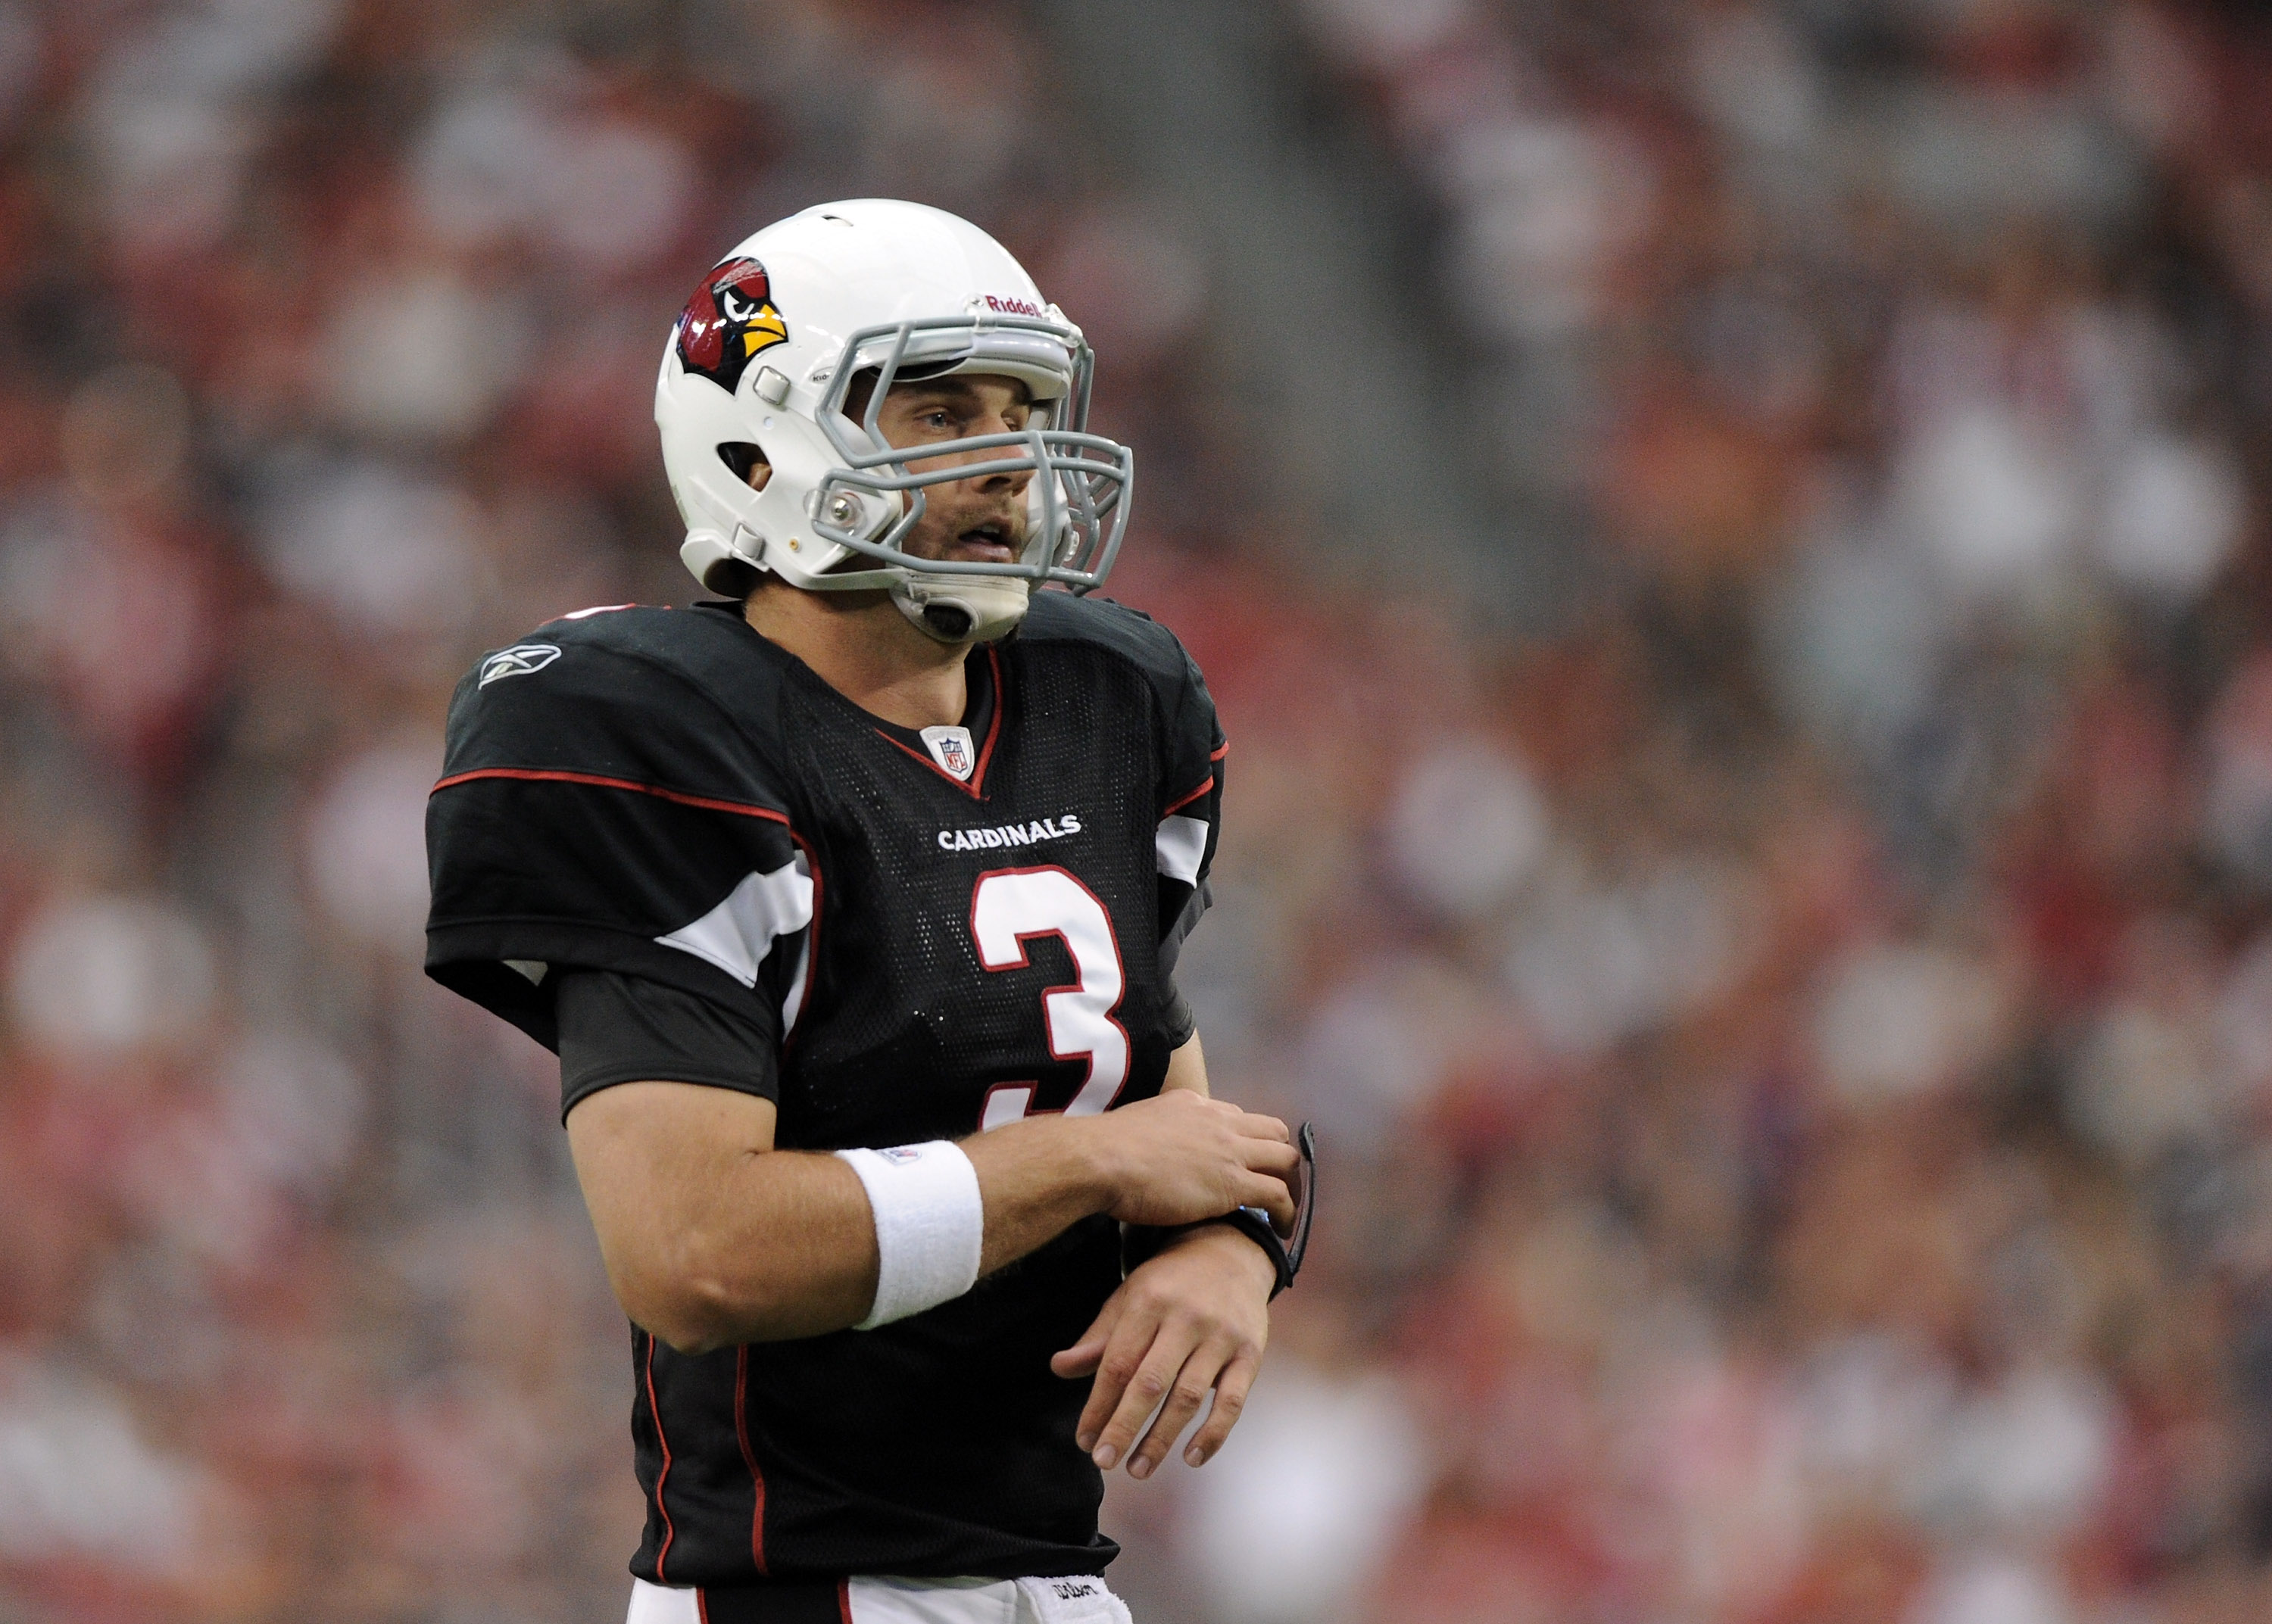 GLENDALE, AZ - OCTOBER 31:  Derek Anderson #3 of the Arizona Cardinals prepares to call a play against the Tampa Bay Buccaneers at University of Phoenix Stadium on October 31, 2010 in Glendale, Arizona.  (Photo by Harry How/Getty Images)